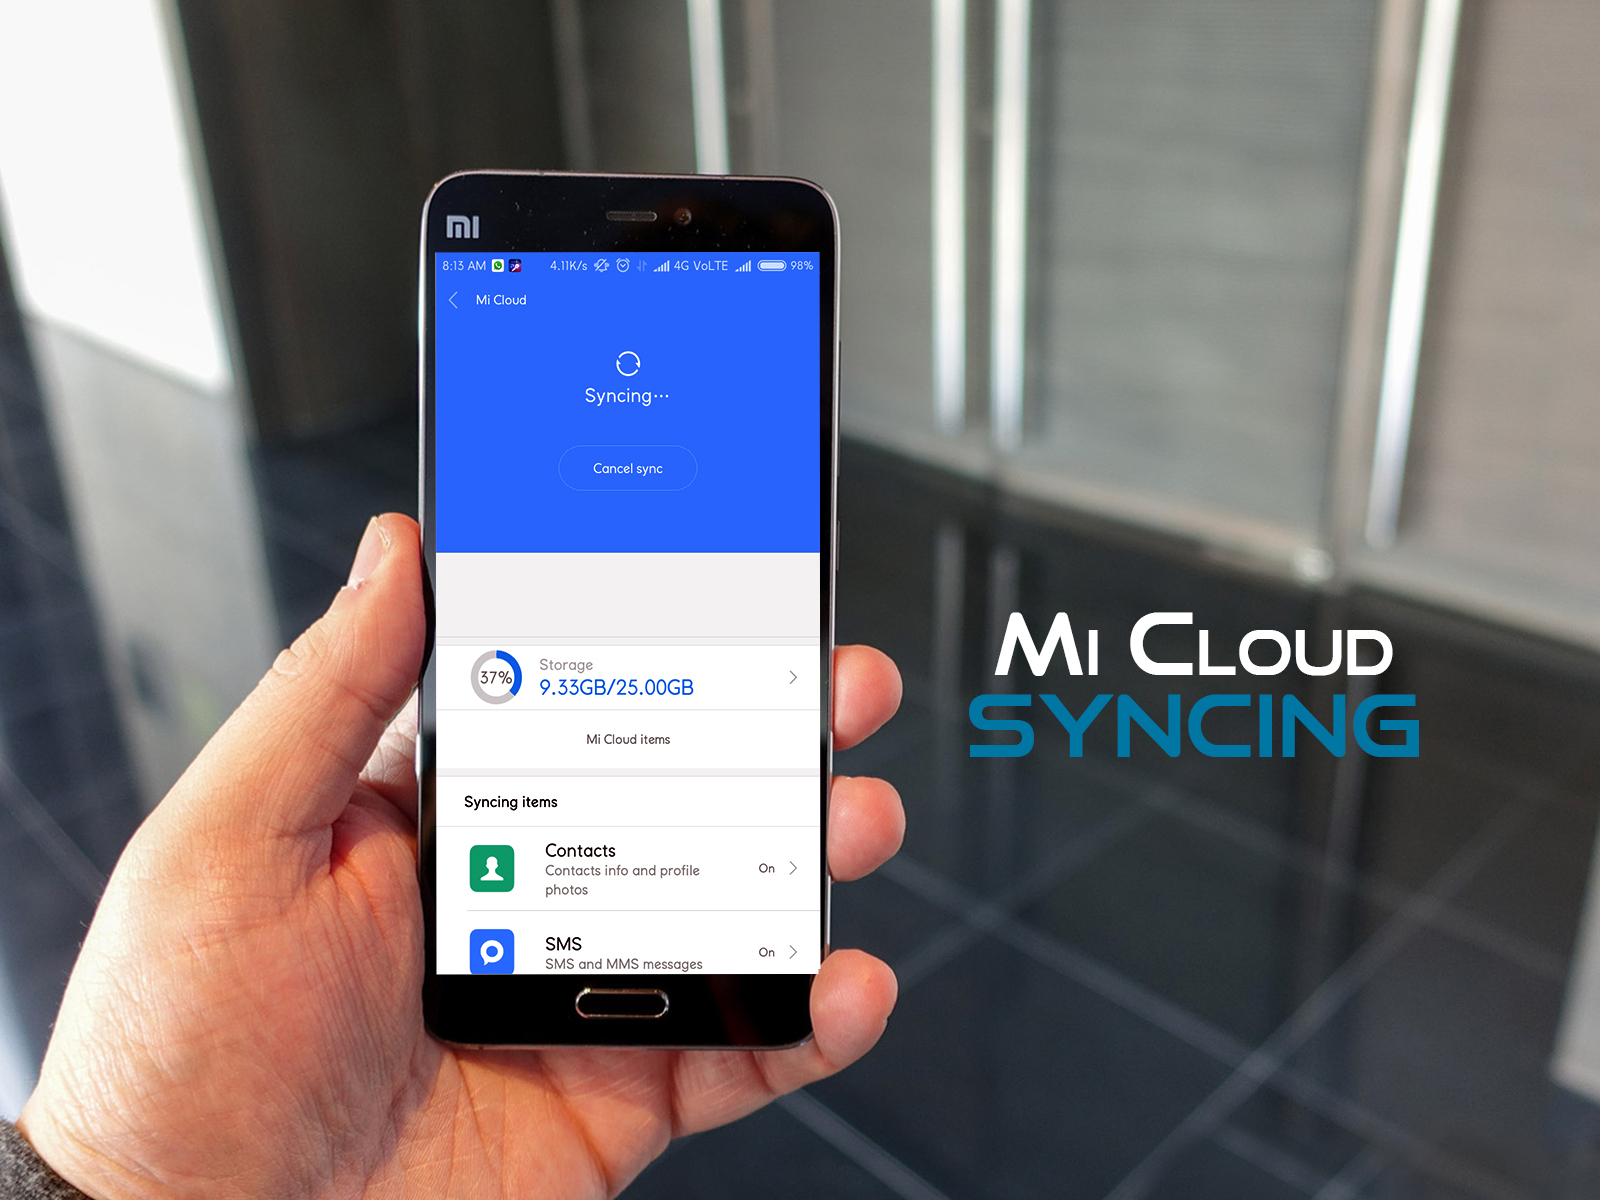 All you need to know about Sync - Tips & Tricks - Mi